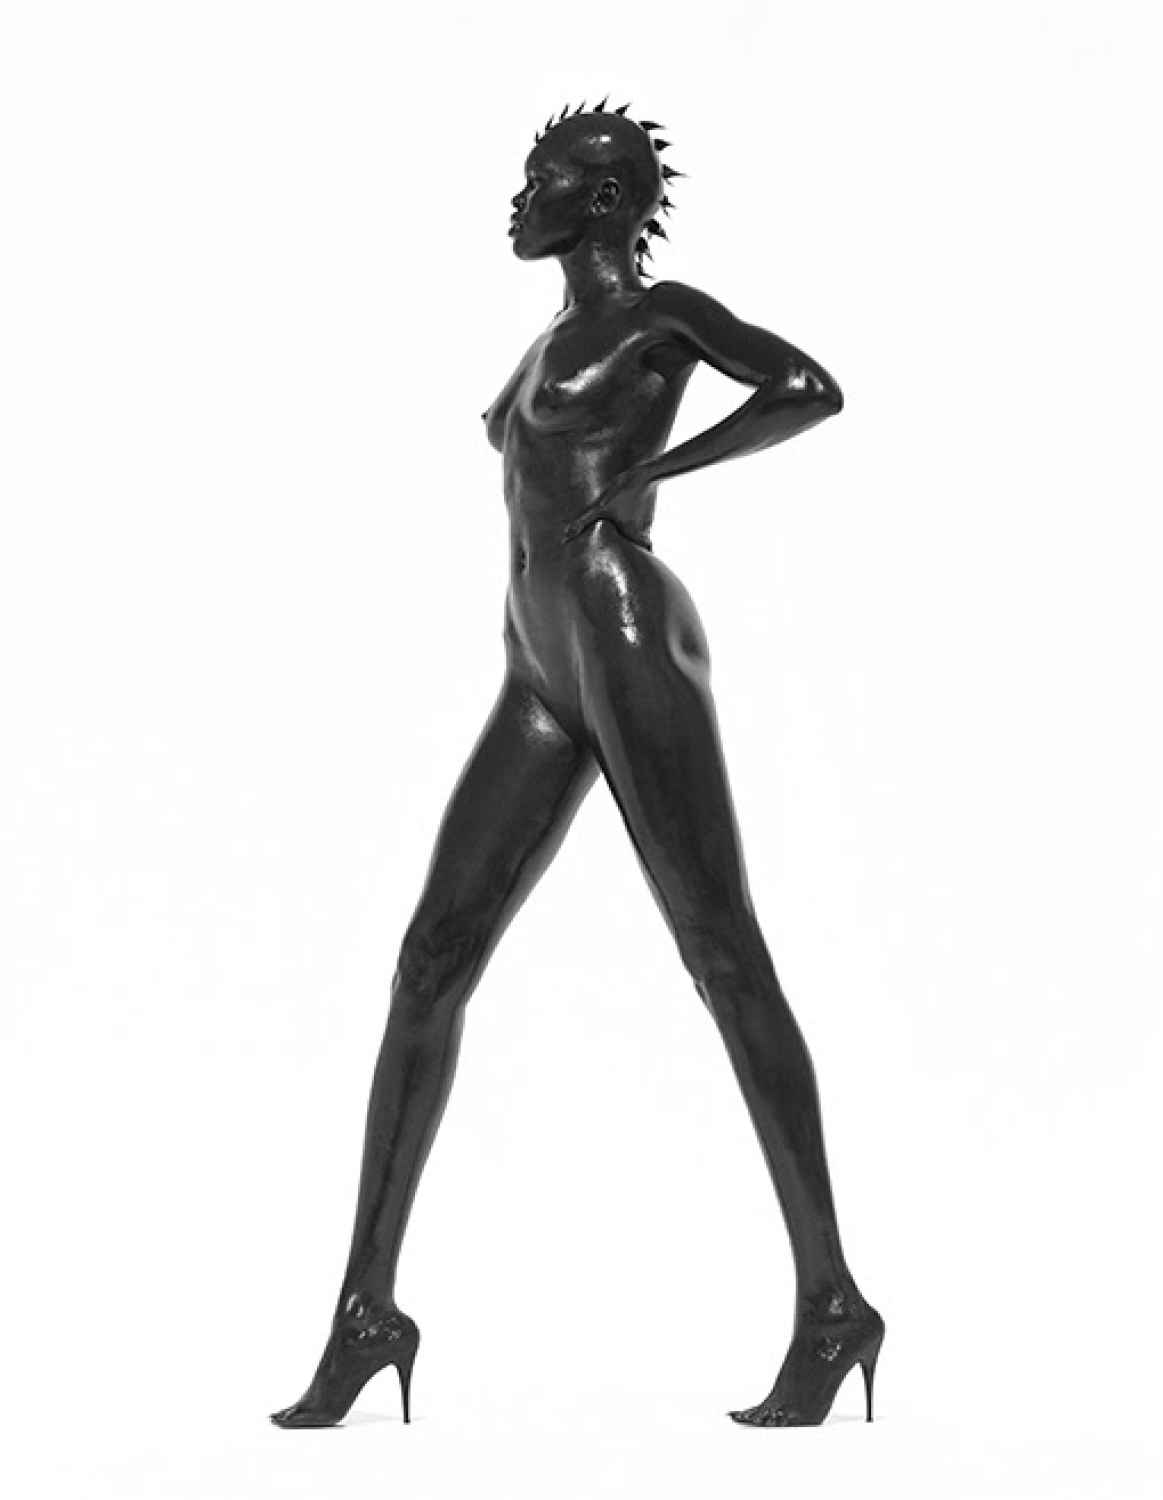 560266f1a990d-herb-ritts-alek-wek-los-angeles-1998.jpg